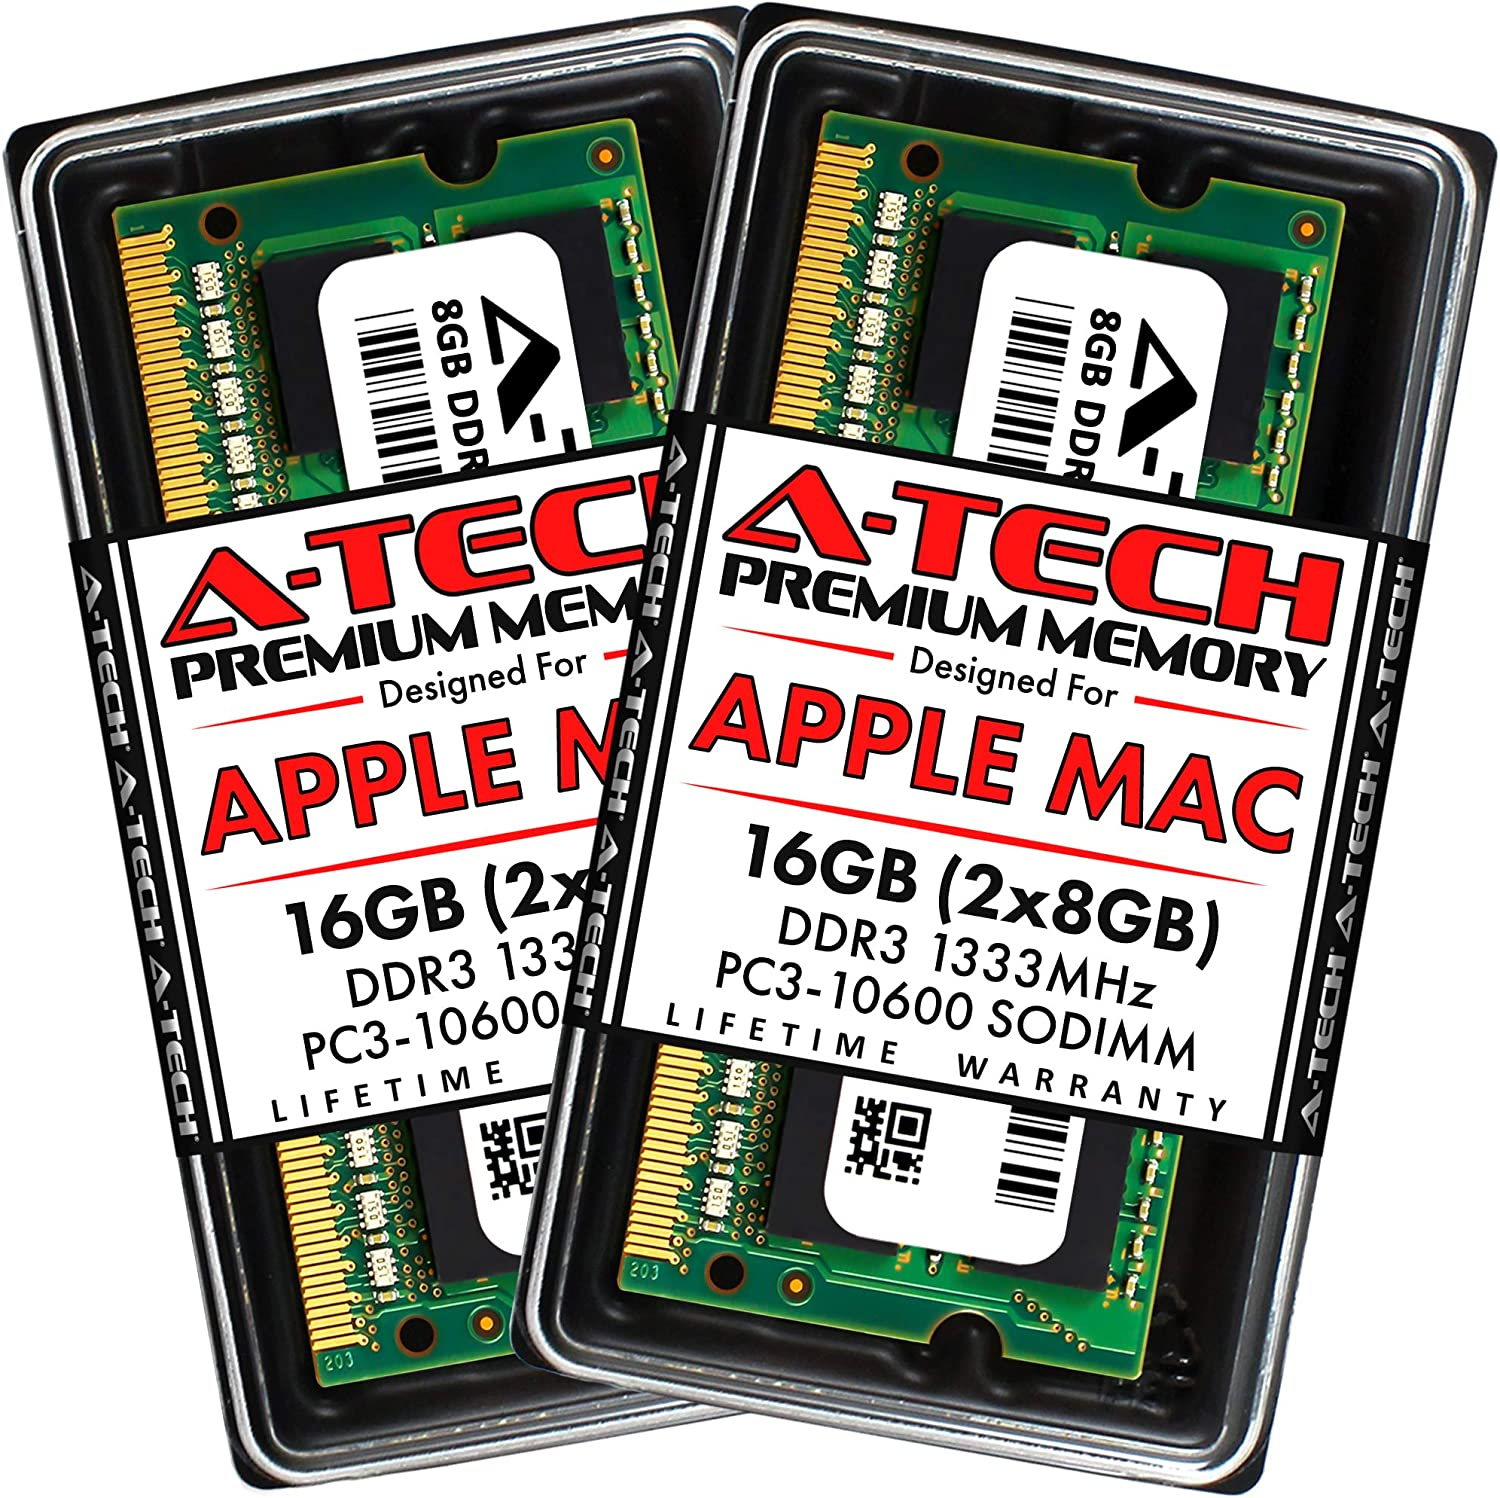 A-Tech 16GB Kit (2x8GB) DDR3 1333MHz SODIMM PC3-10600 RAM for Apple MacBook Pro (Early/Late 2011), iMac (Mid 2010 27 inch, Mid 2011 21.5/27 inch), Mac Mini (Mid 2011)